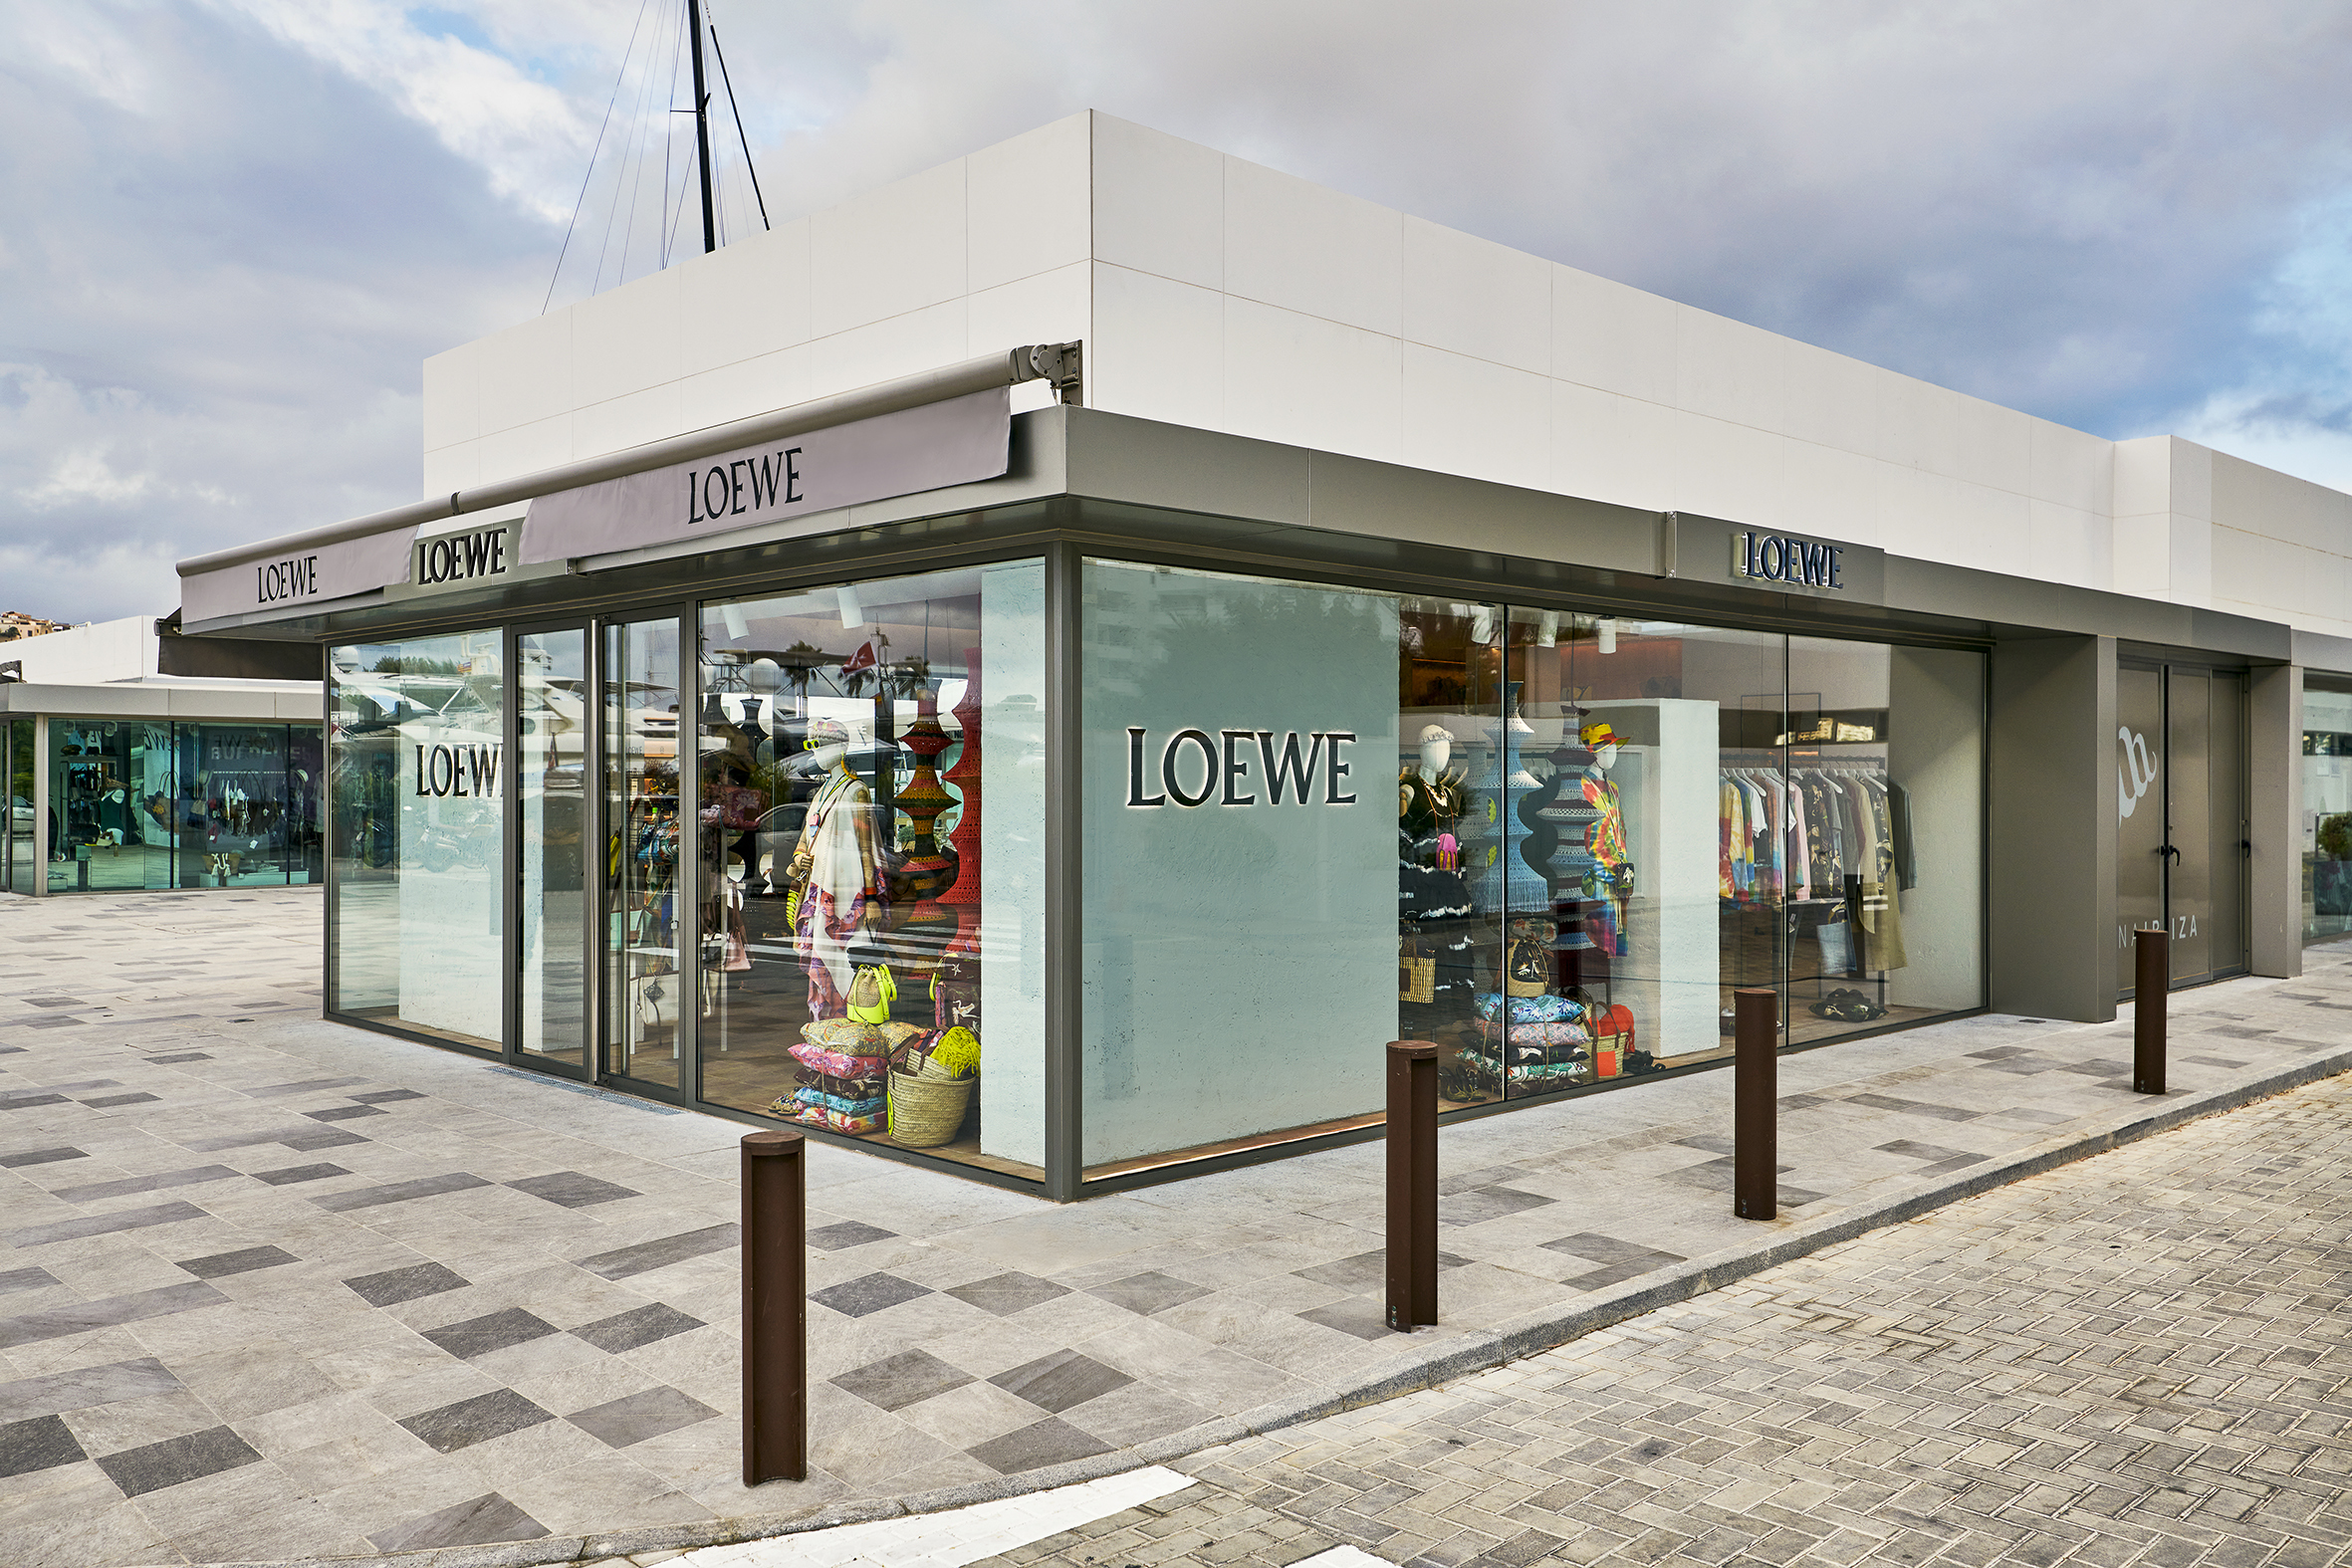 Loewe Opens Pop-Up stores in Ibiza and St. Tropez